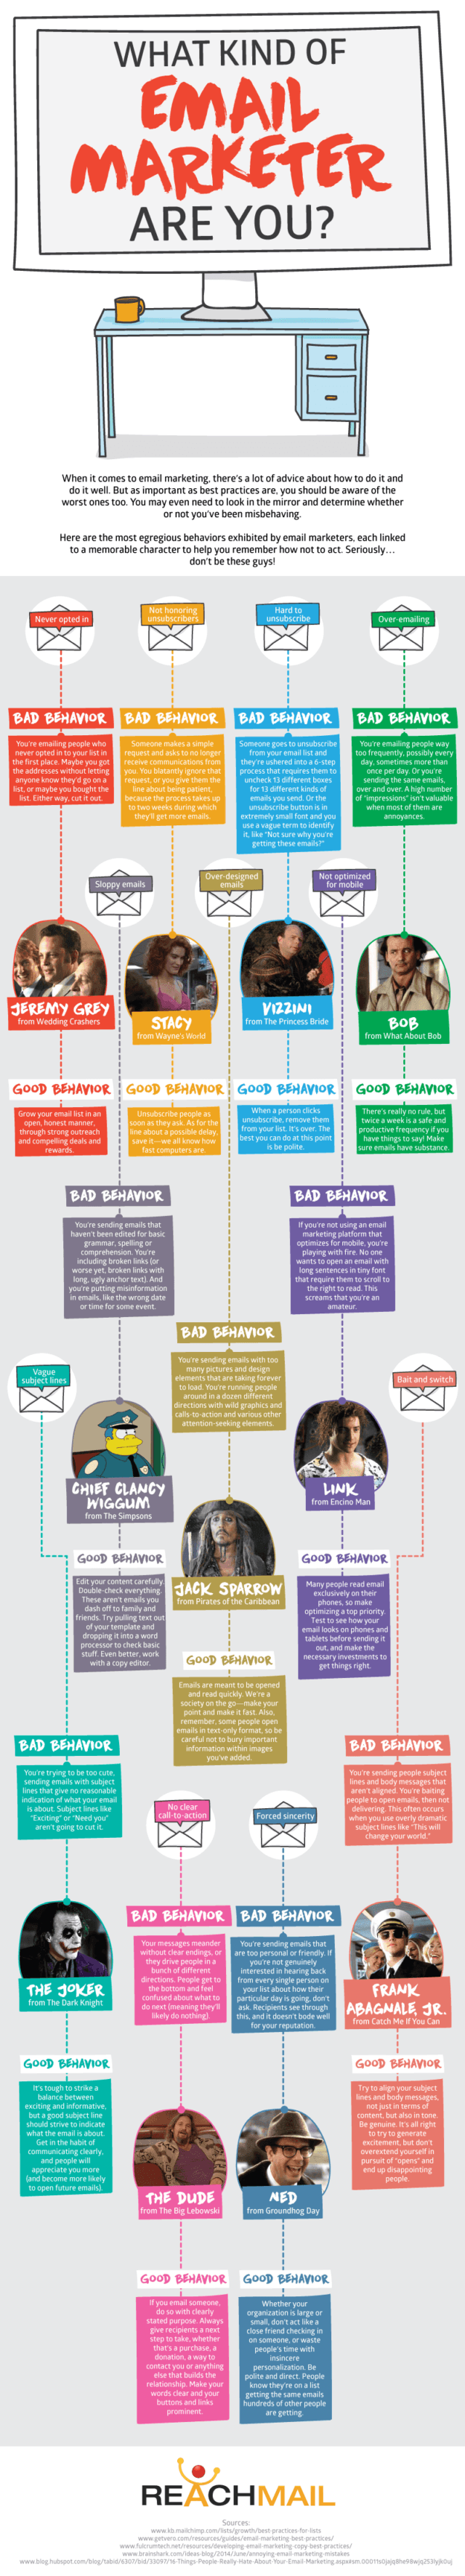 email-strategy-mistakes